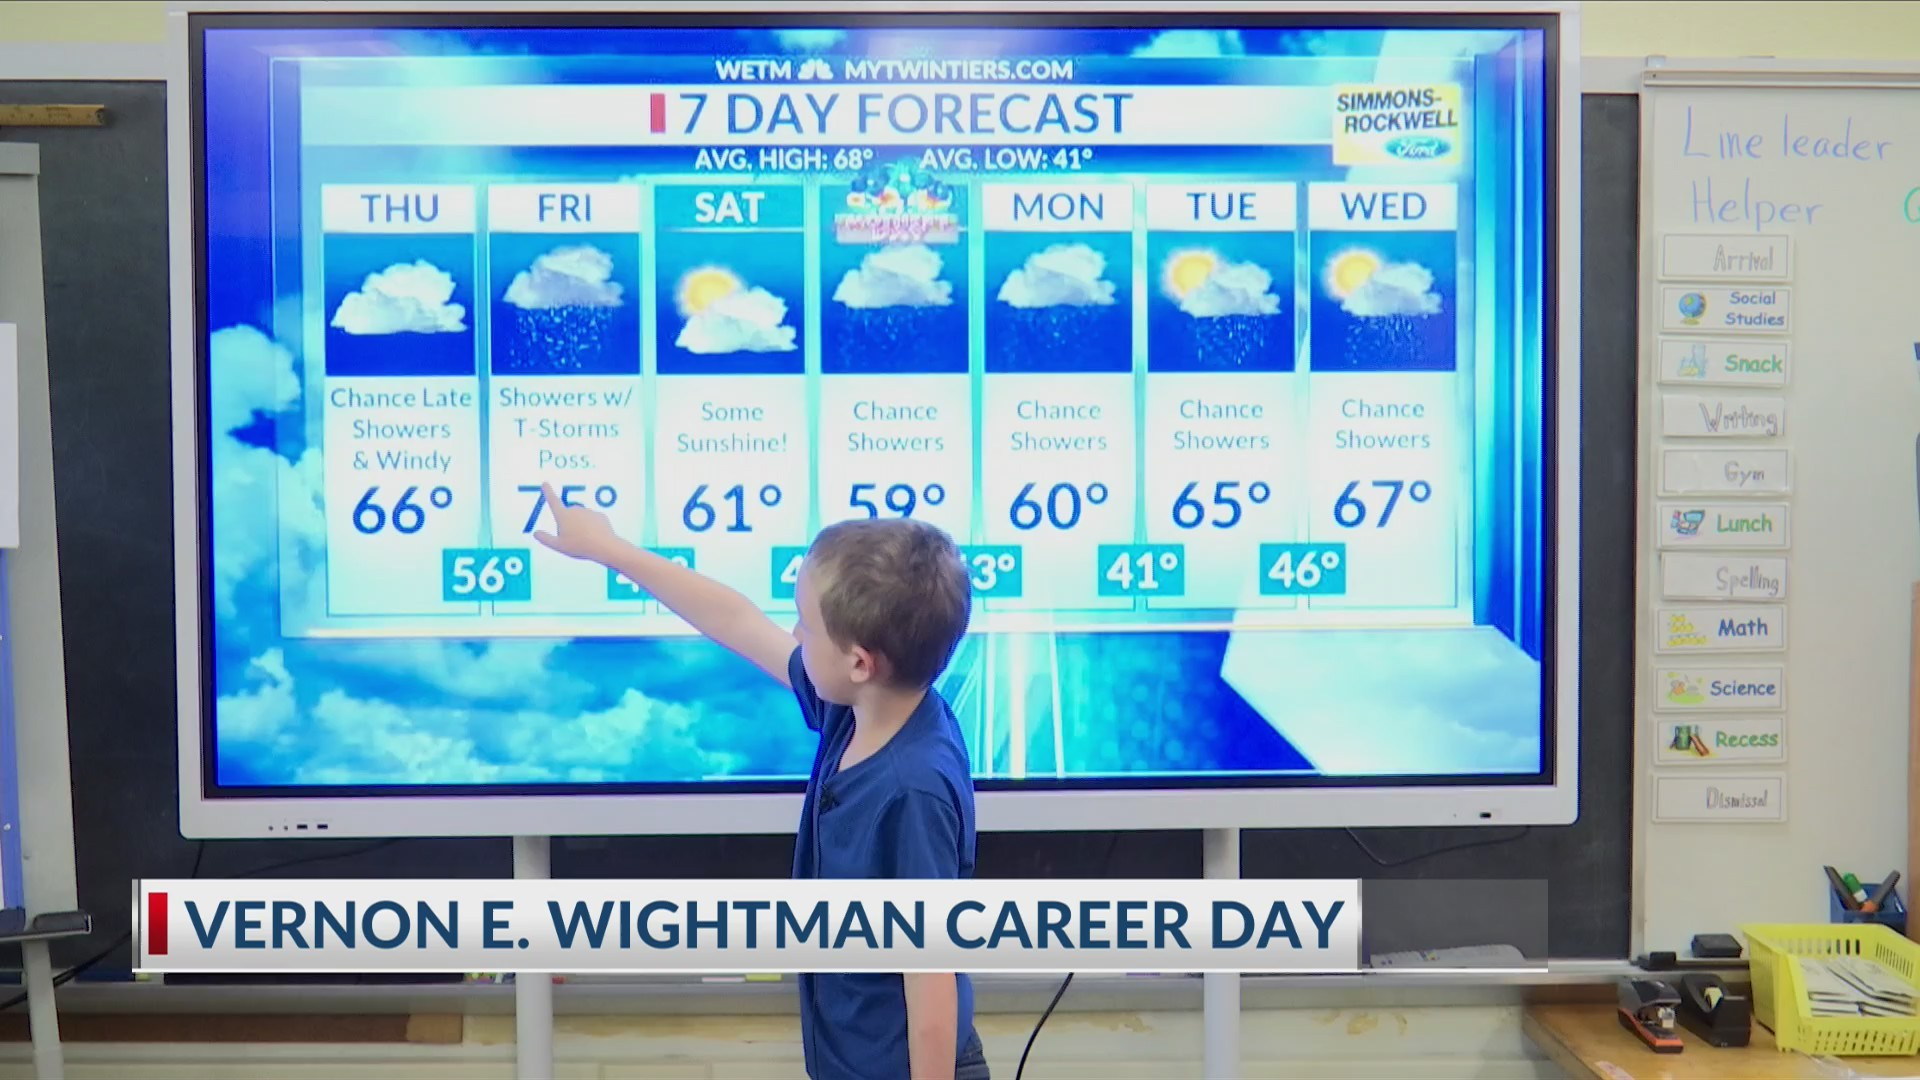 Weather Wisdom: Vernon E. Wightman Primary Career Day